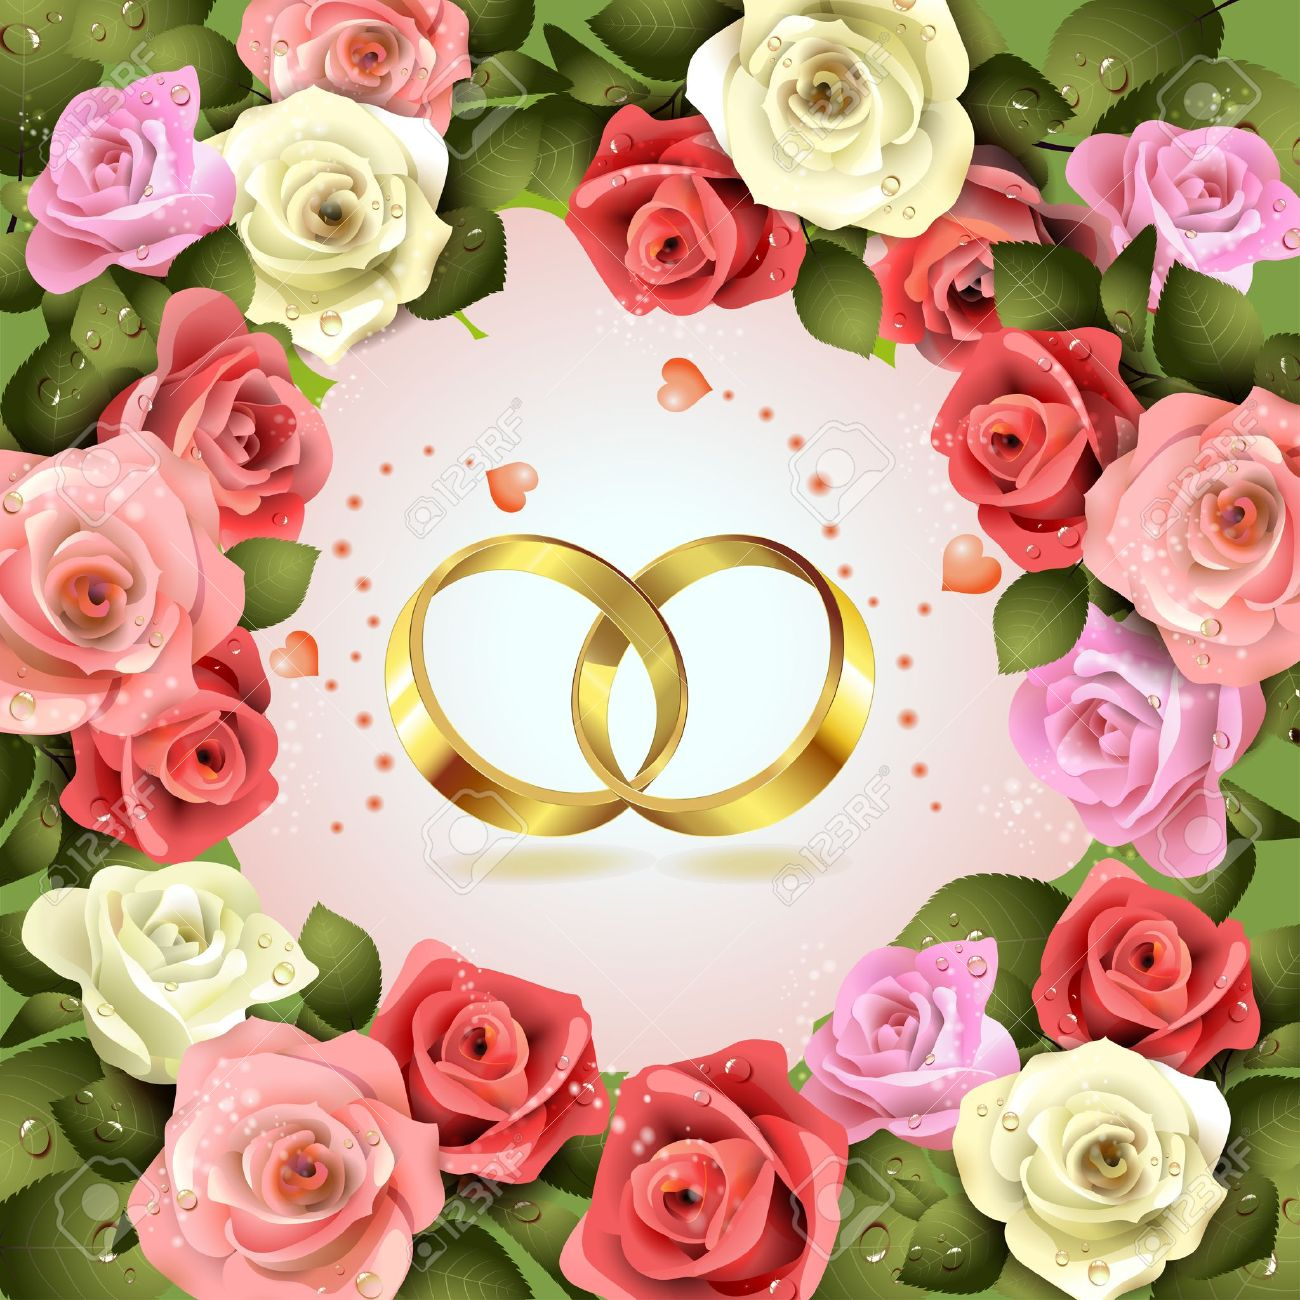 Two Wedding Rings With Hearts And Flowers Royalty Free Cliparts